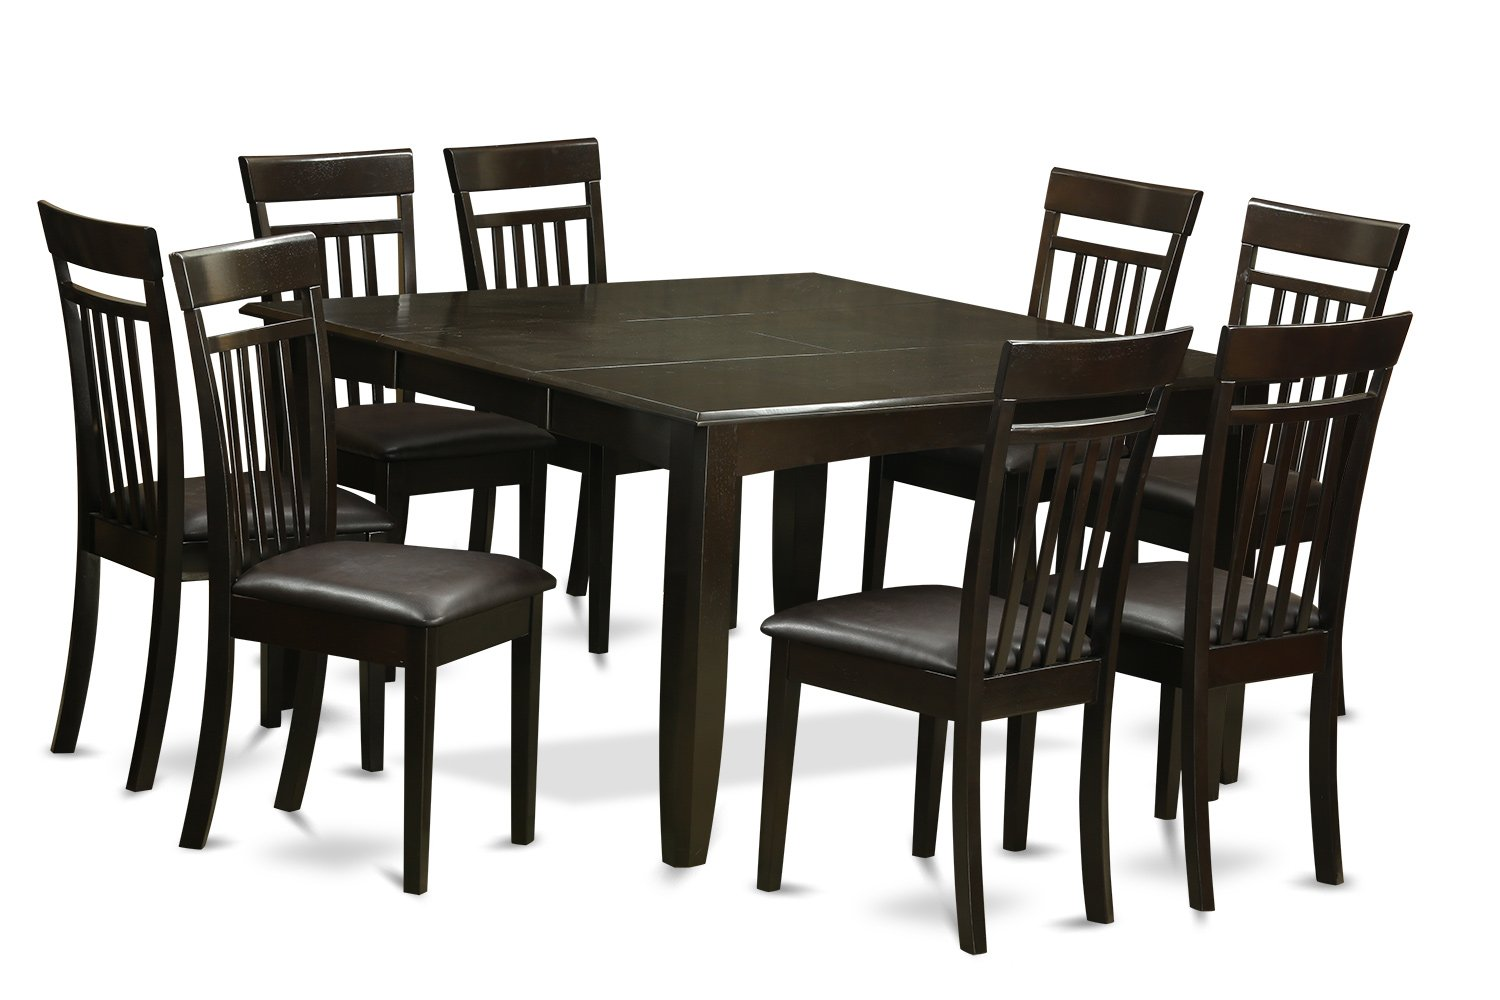 East West Furniture 9 Pc Dining room set-Table and 8 Kitchen Chairs, 9-piece, Cappuccino Finish by East West Furniture